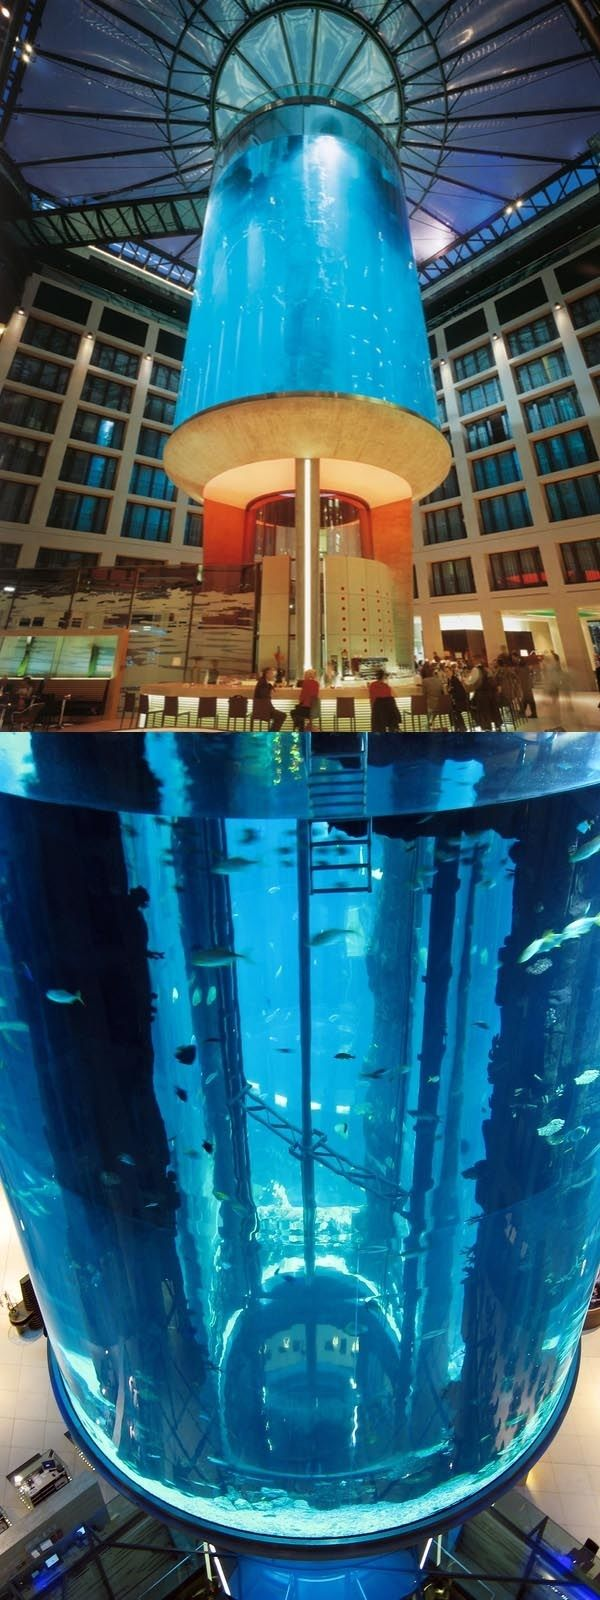 The World's Largest Cylindrical Aquarium - Berlin Germany